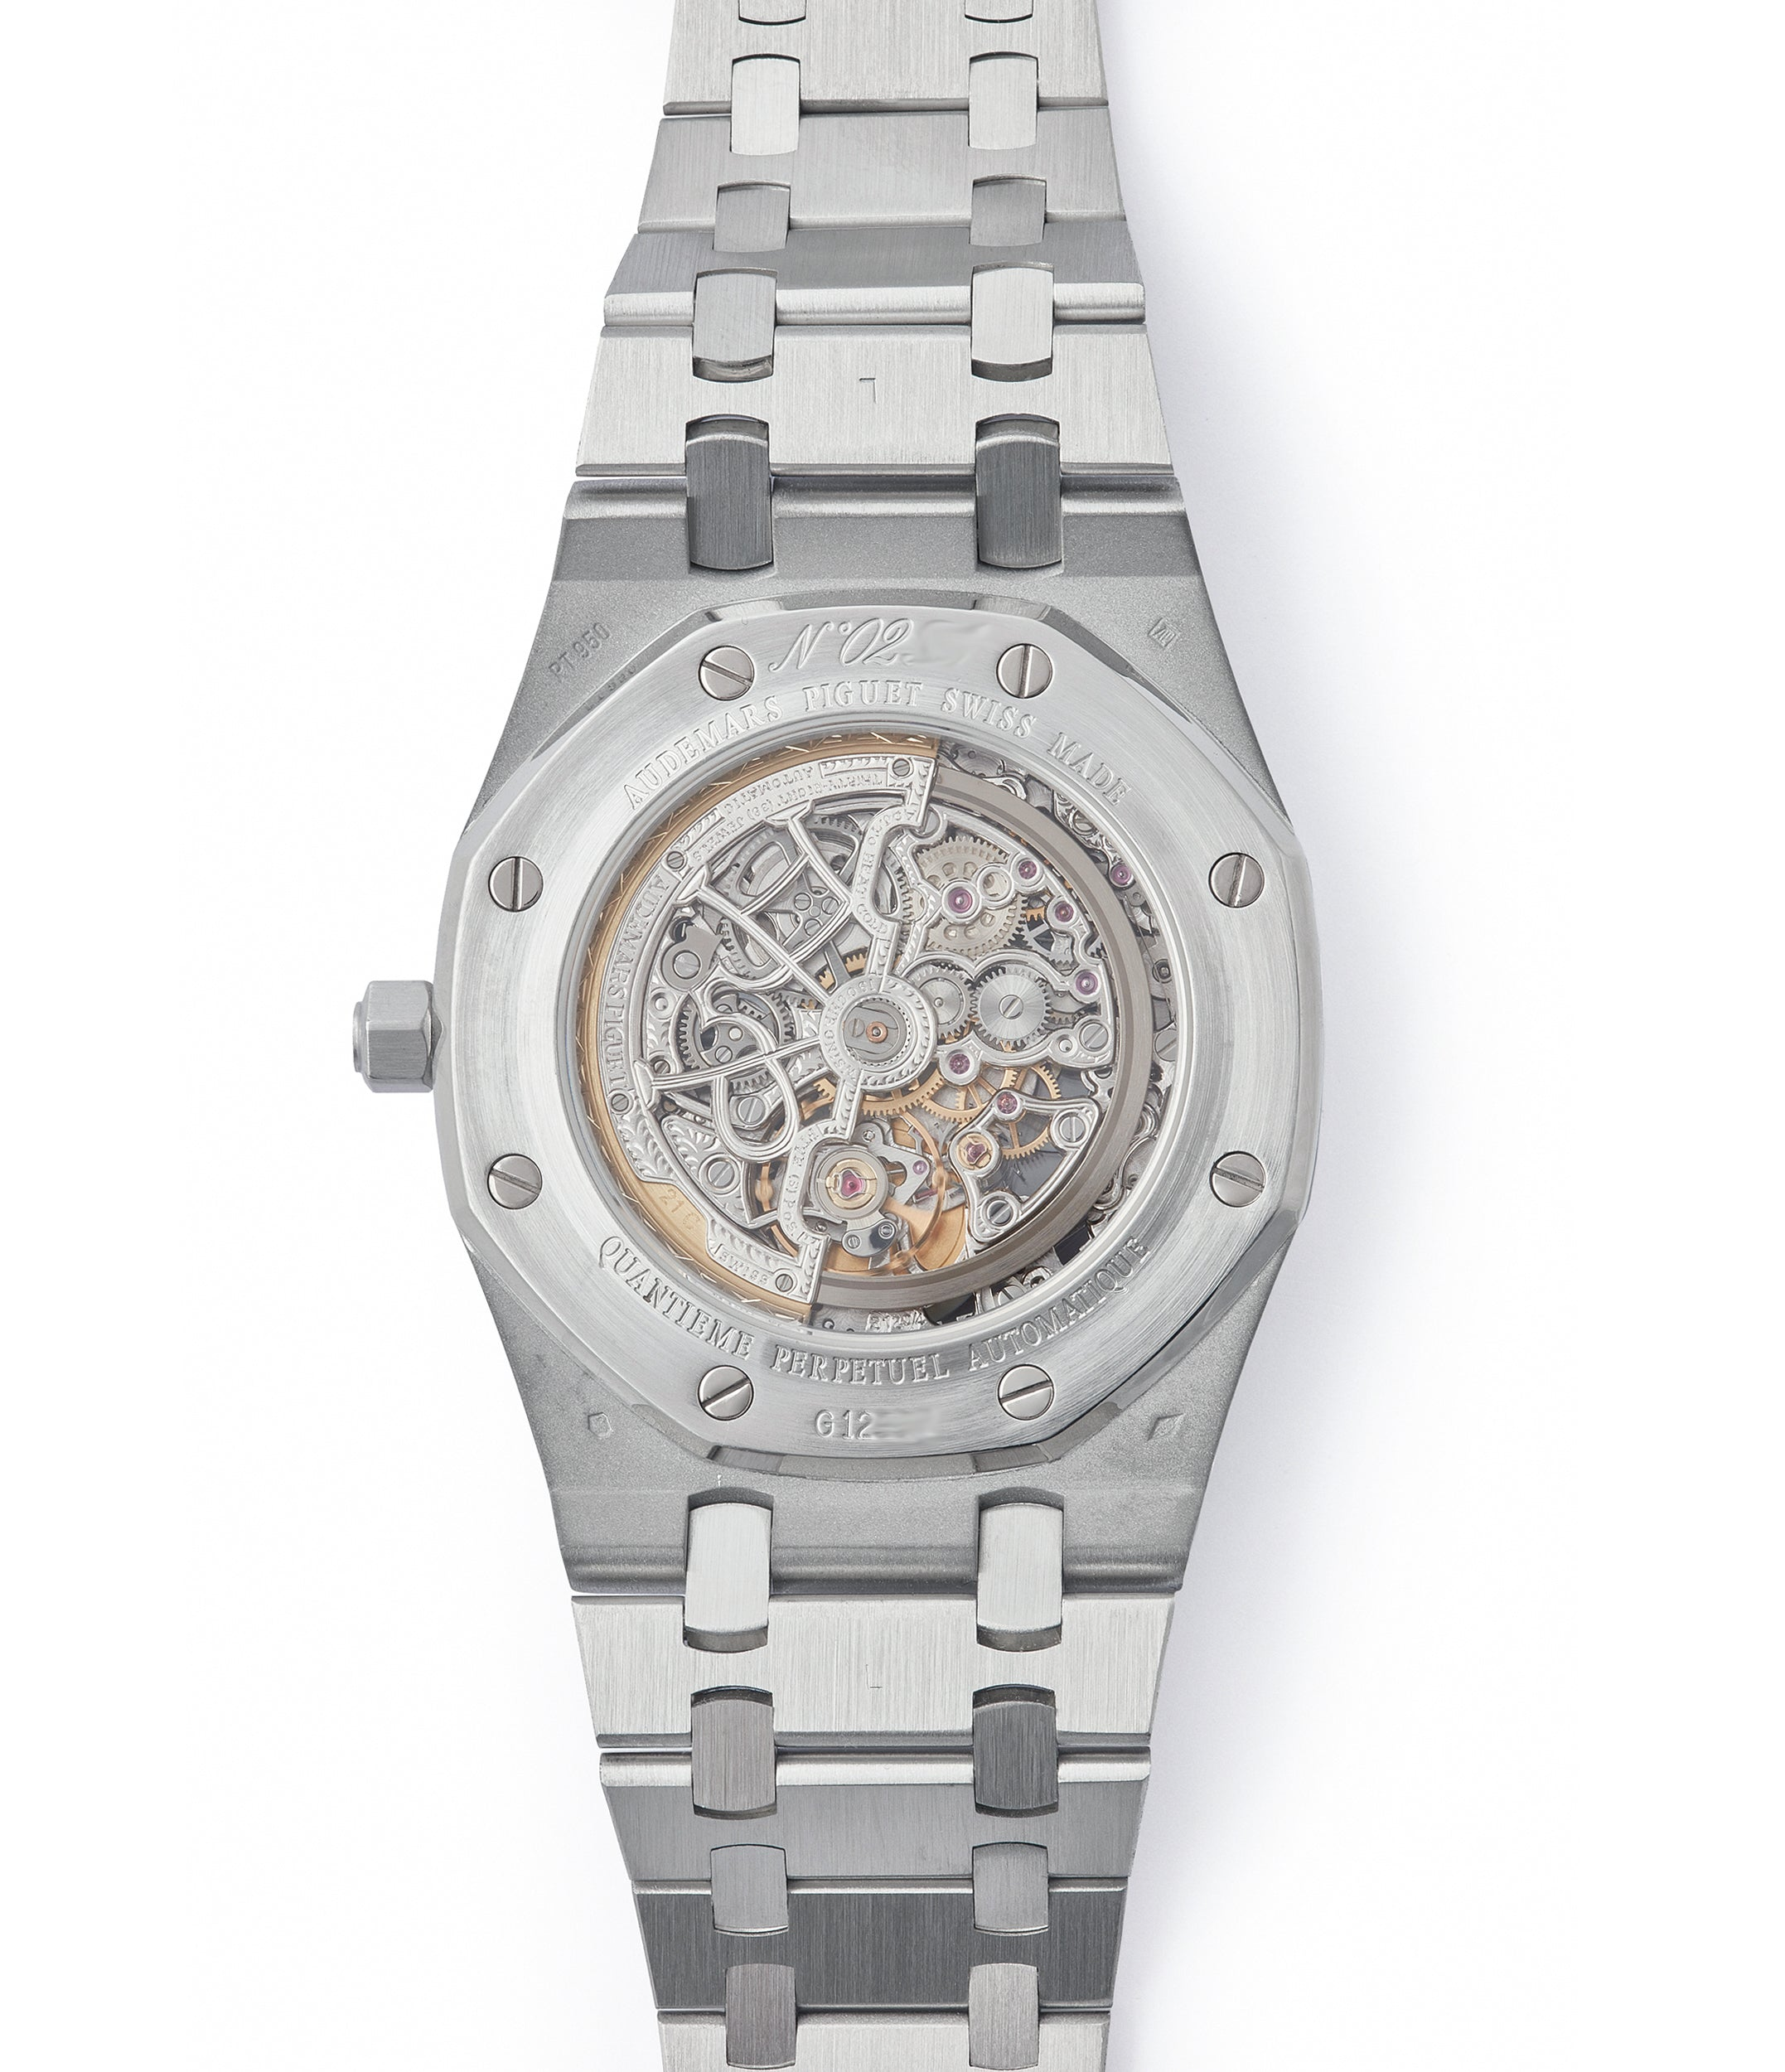 Audemars Piguet Quantieme Perpetual Royal Oak  25829PT perpetual calendar skeleton dial platinum full set pre-owned watch for sale online at A Collected Man London UK specialist of rare watches